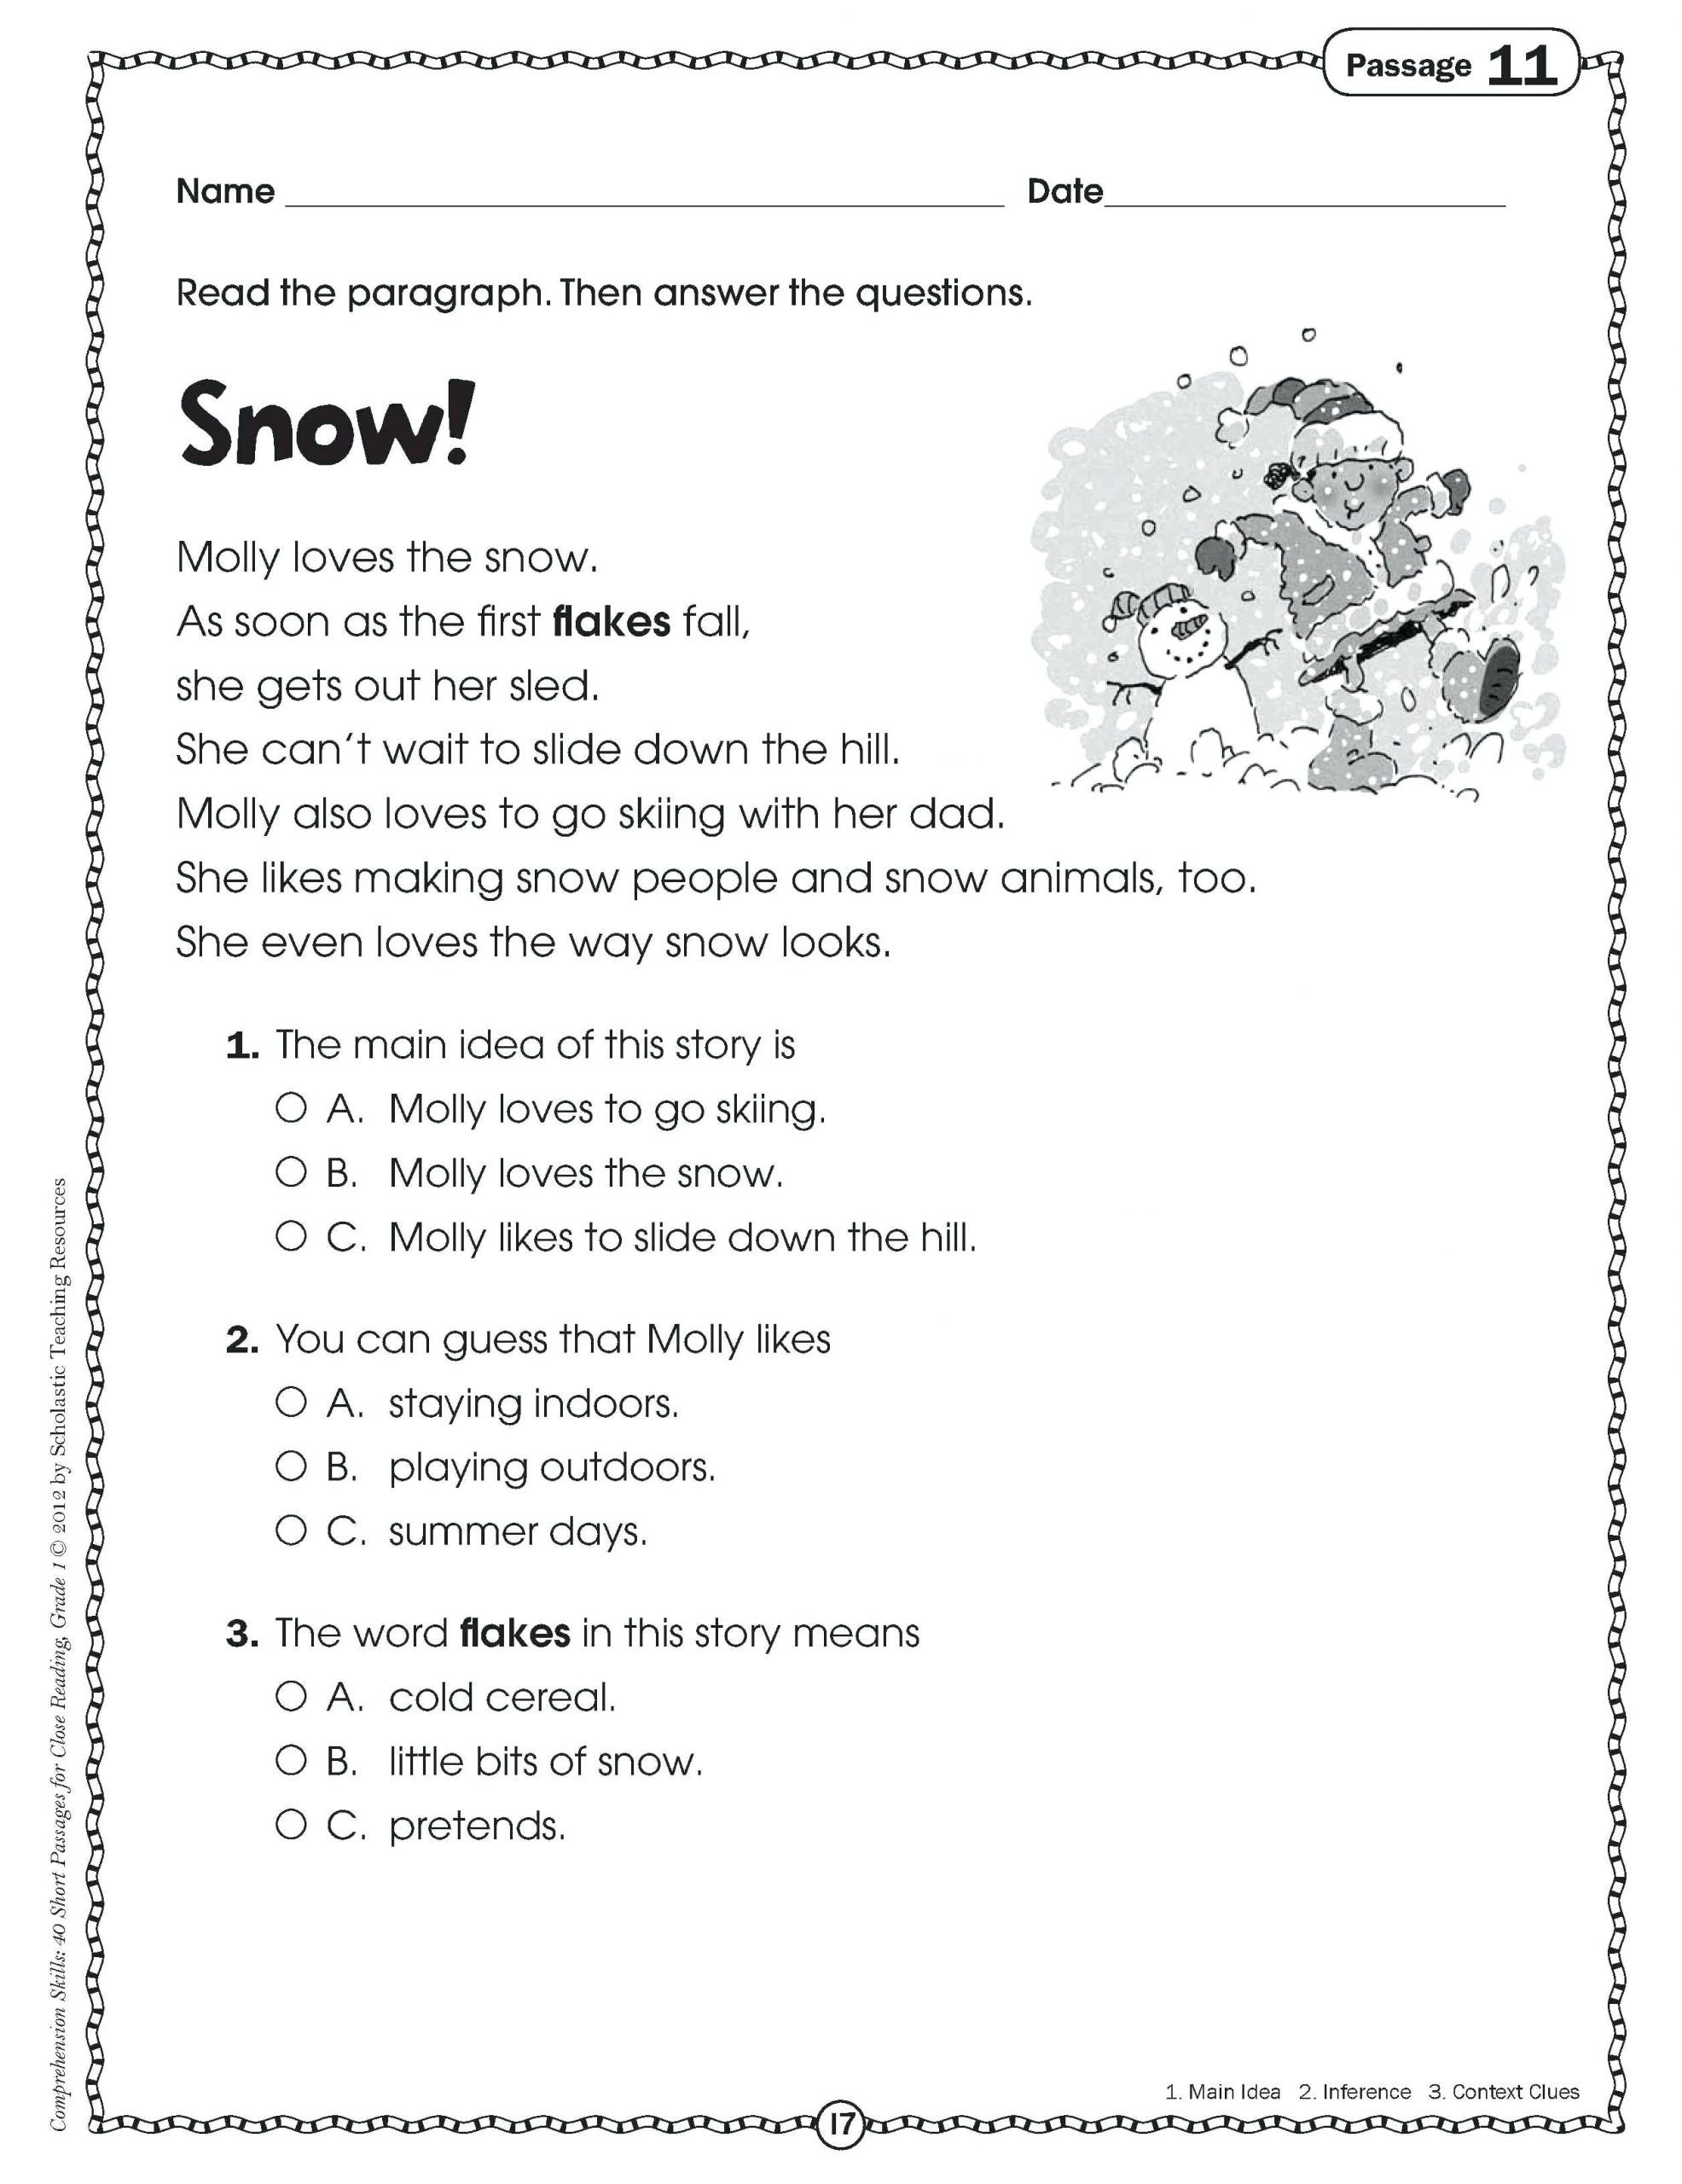 Inference Worksheets 4th Grade Pdf Worksheets Main Idea Worksheets 4th Grade Pdf Free Main